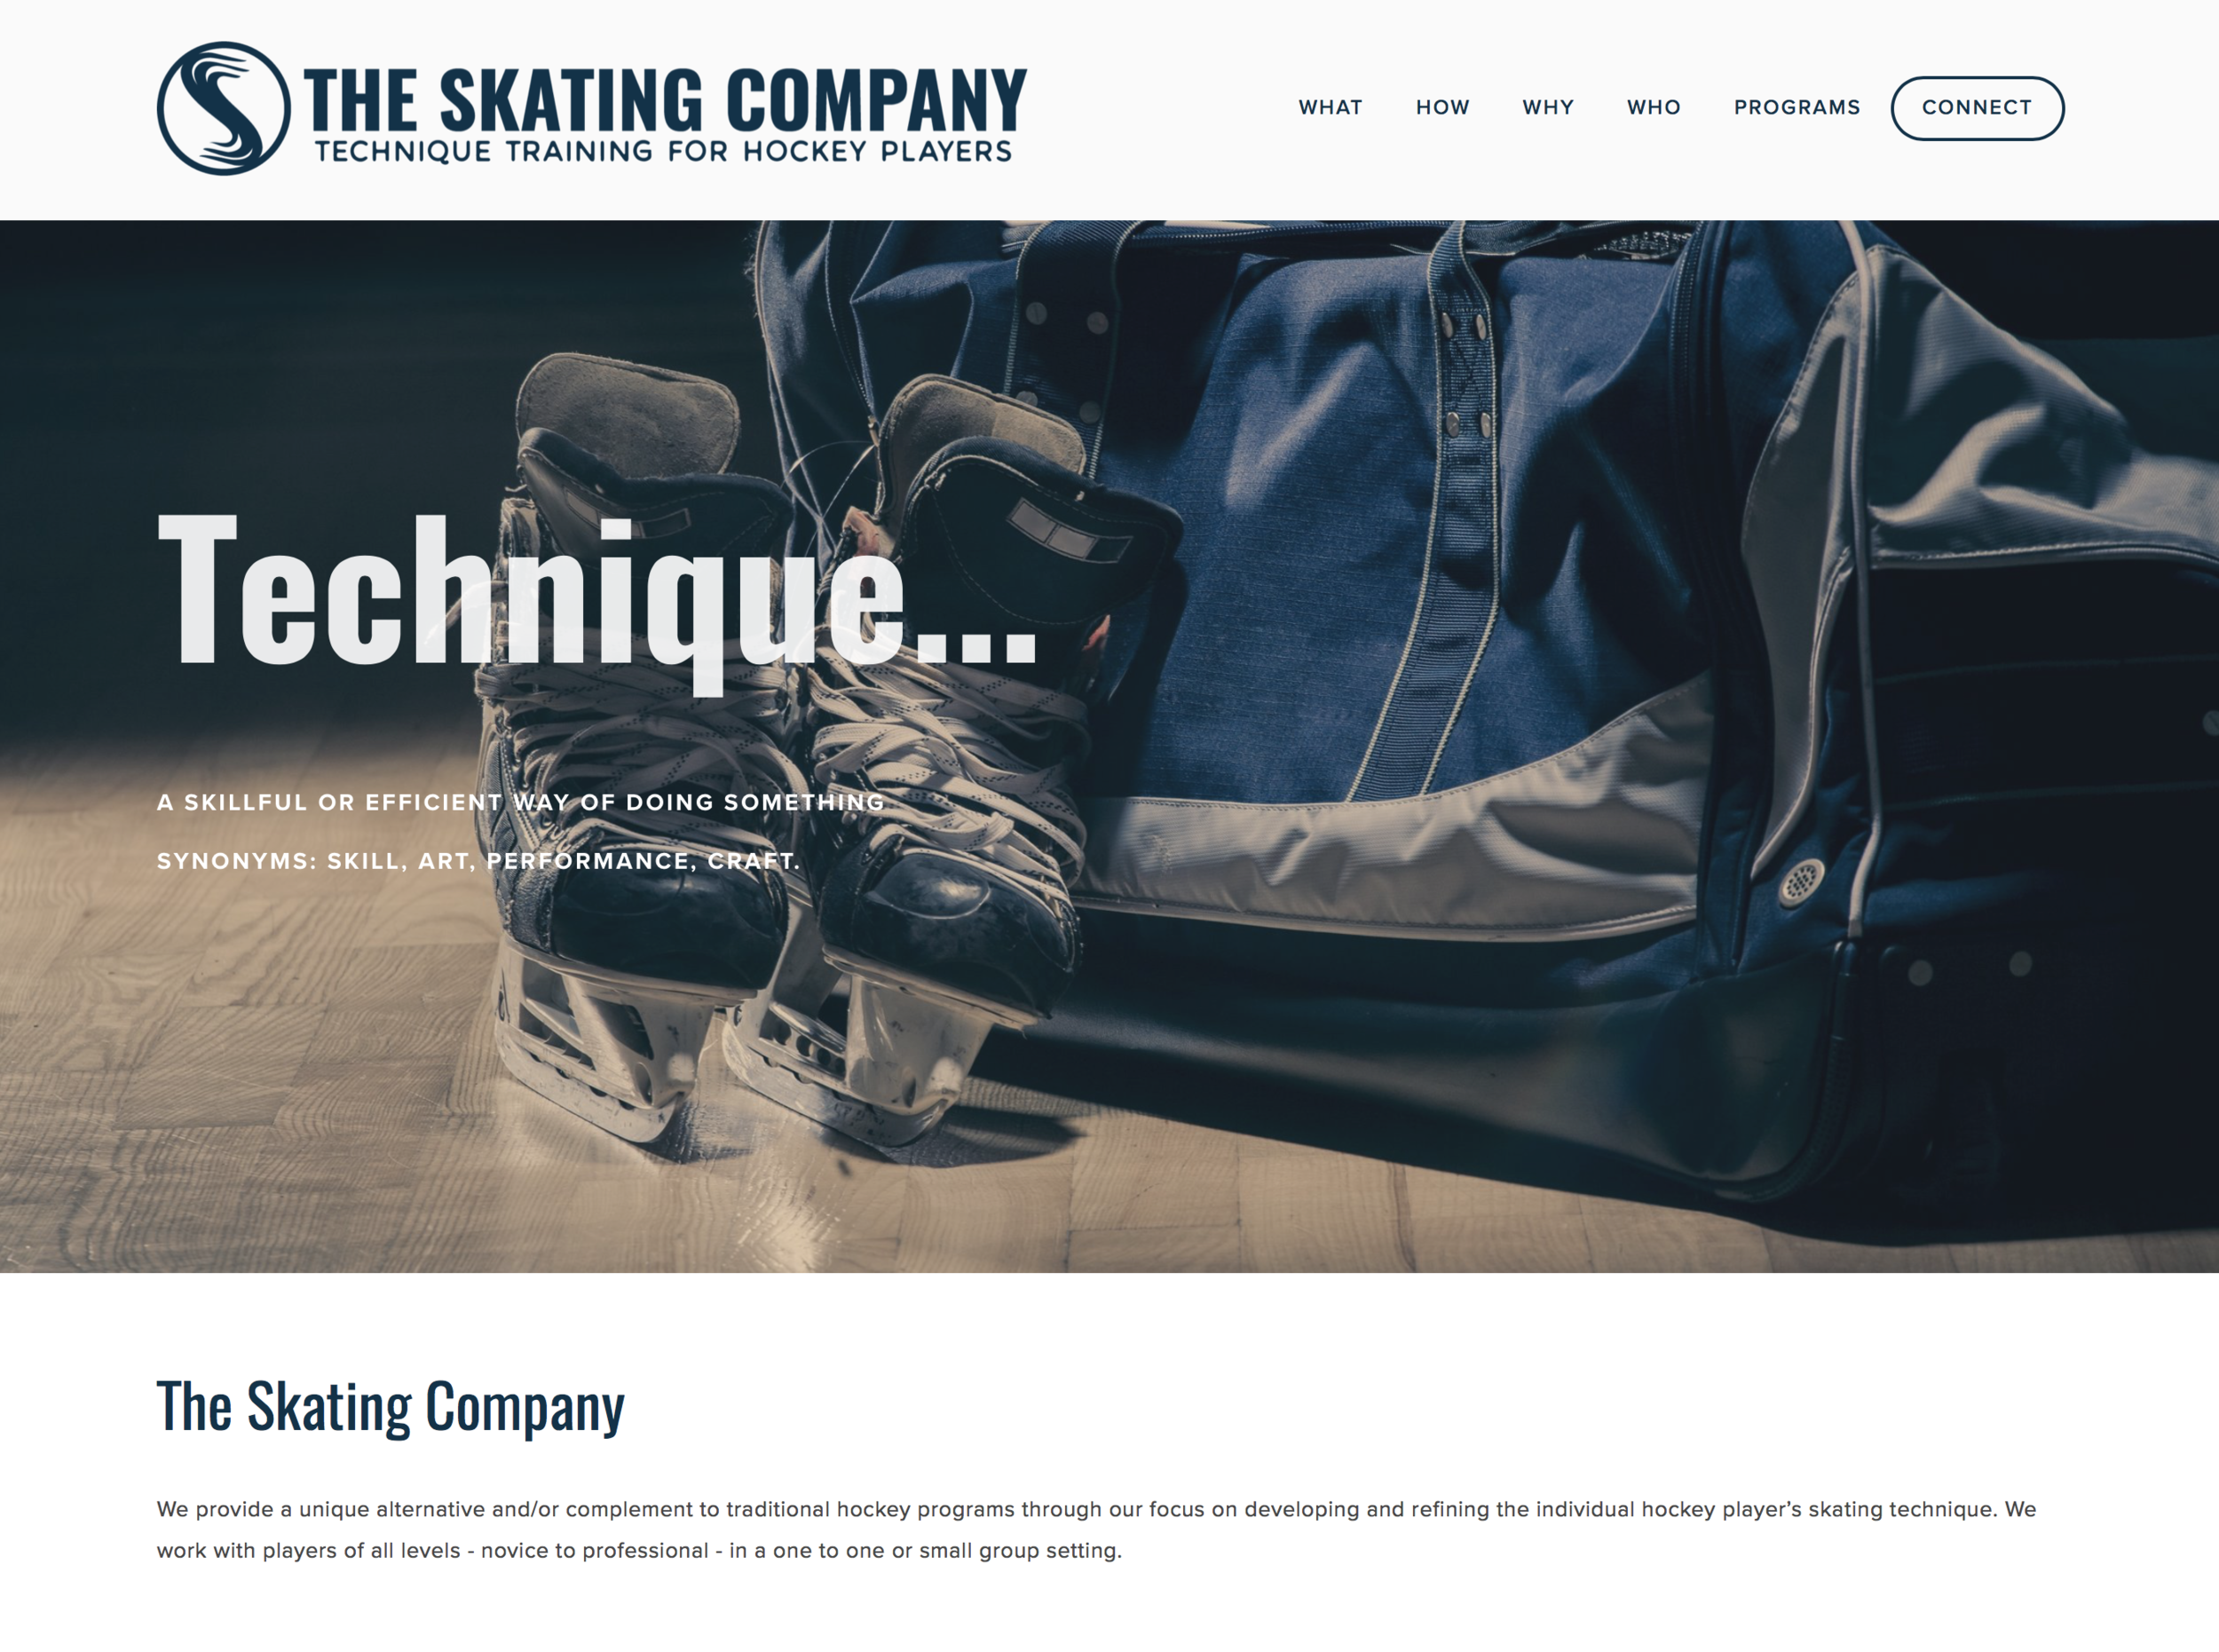 Website for The Skating Company in Alberta, Canada